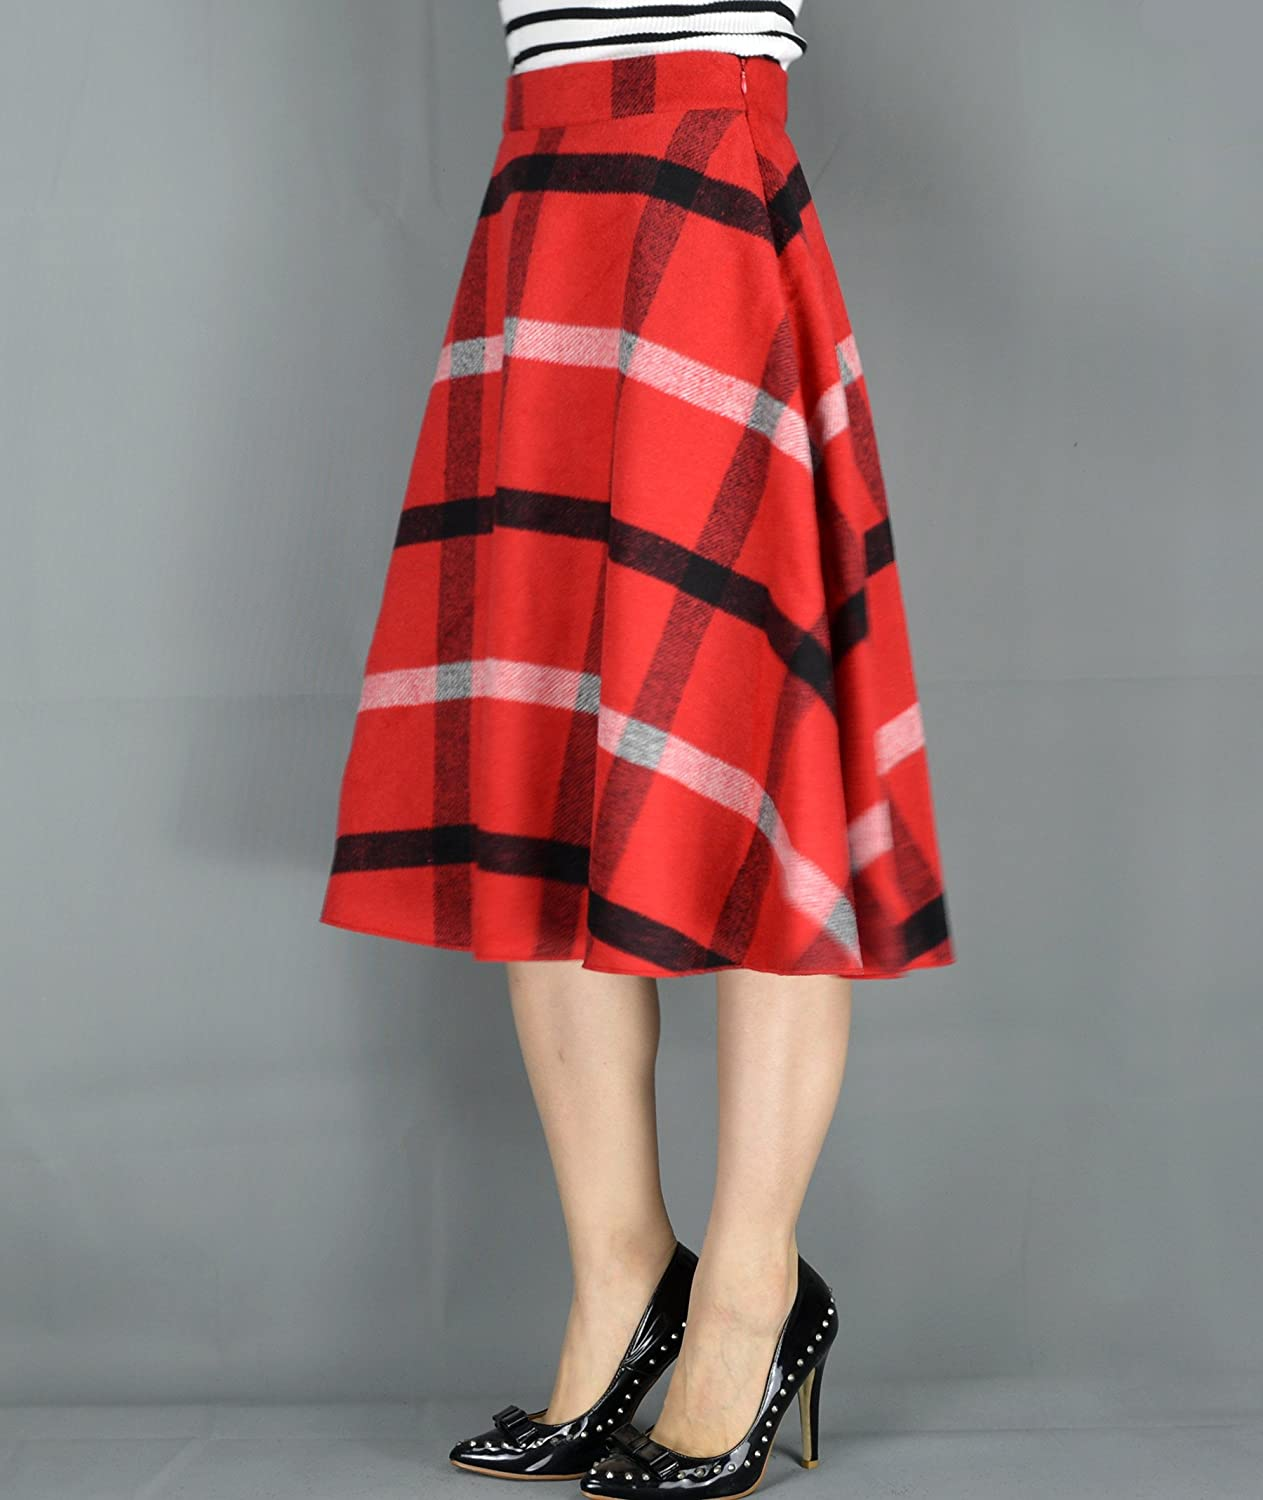 Retro Skirts: Vintage, Pencil, Circle, & Plus Sizes YSJERA Womens Wool Midi Skirt A-Line Pleated Vintage Plaid Winter Swing Skirts $25.99 AT vintagedancer.com